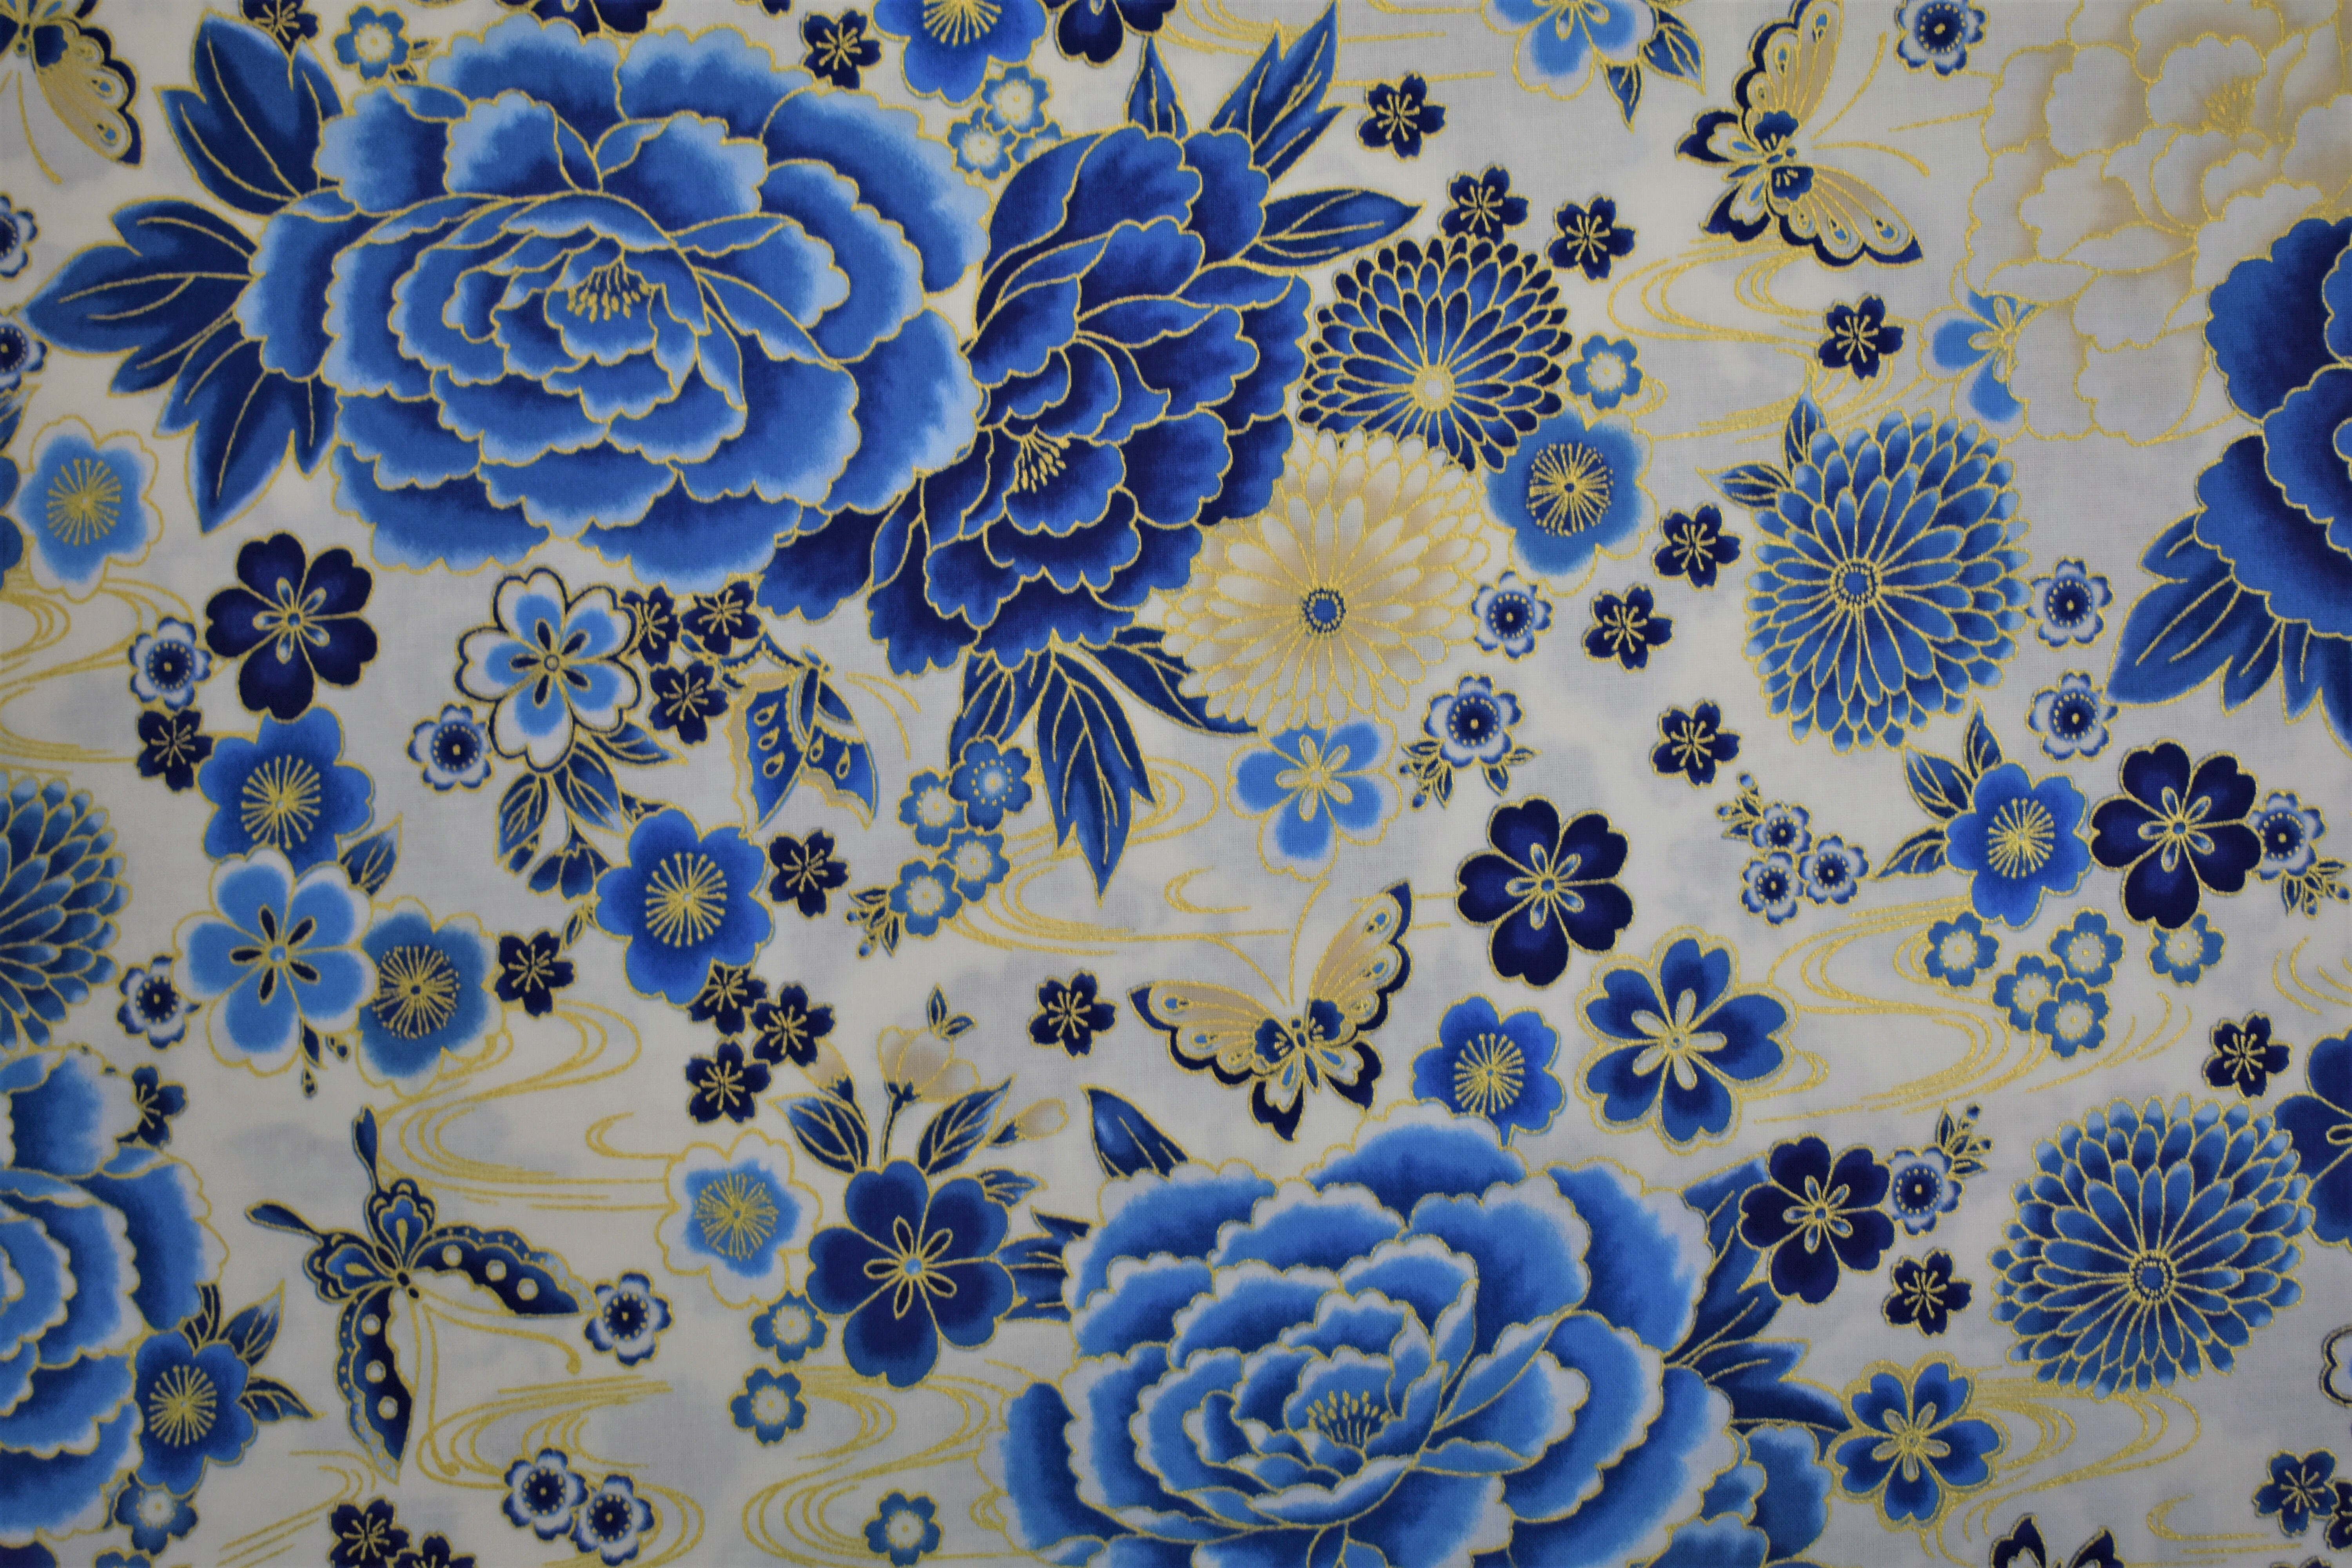 Imperial Collection - Blue Flowers - Robert Kaufman 55009